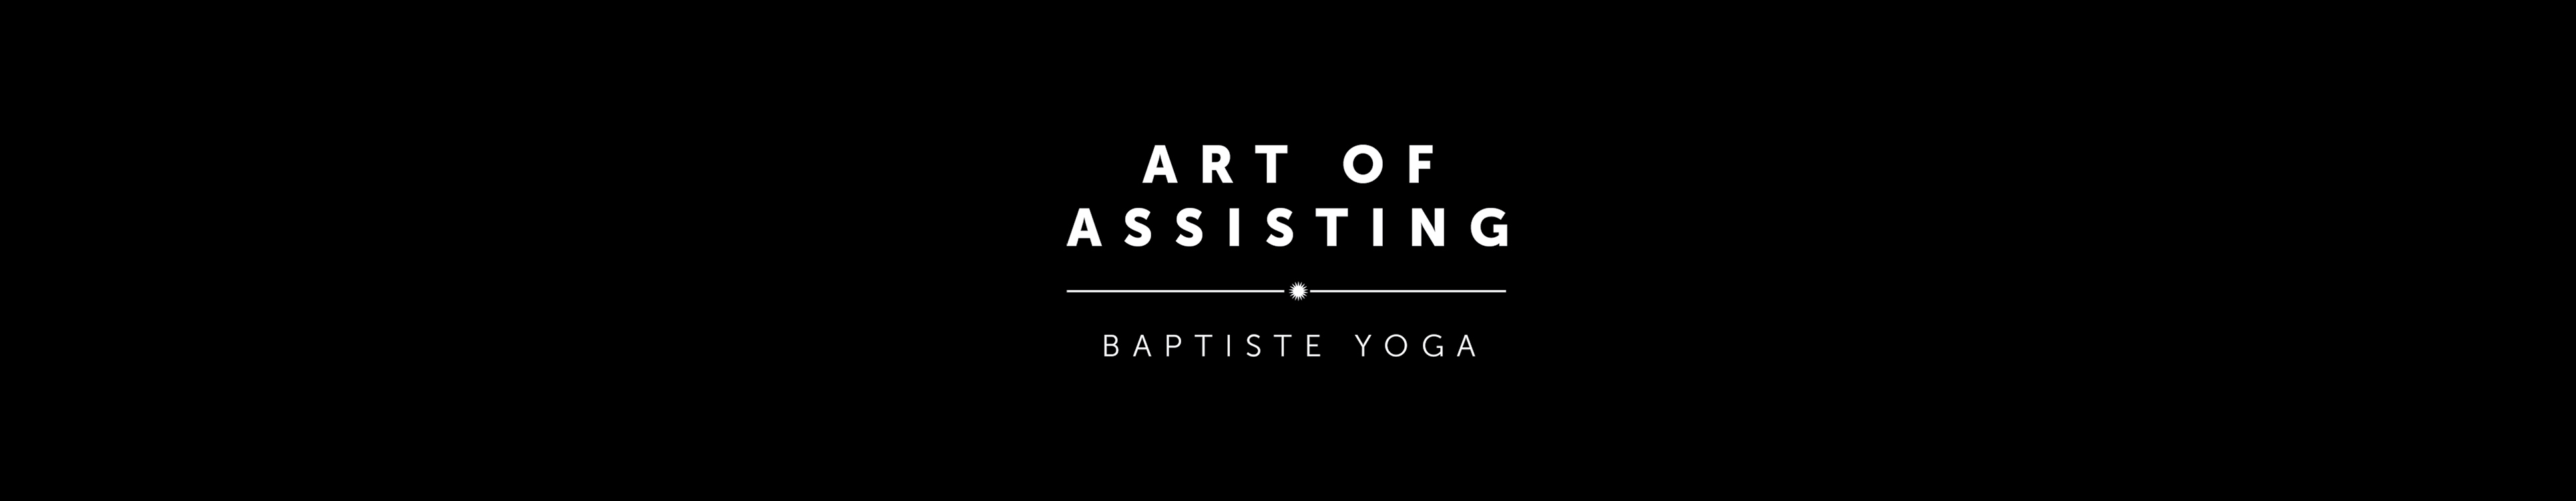 Warrior Yoga | Art of Assisting